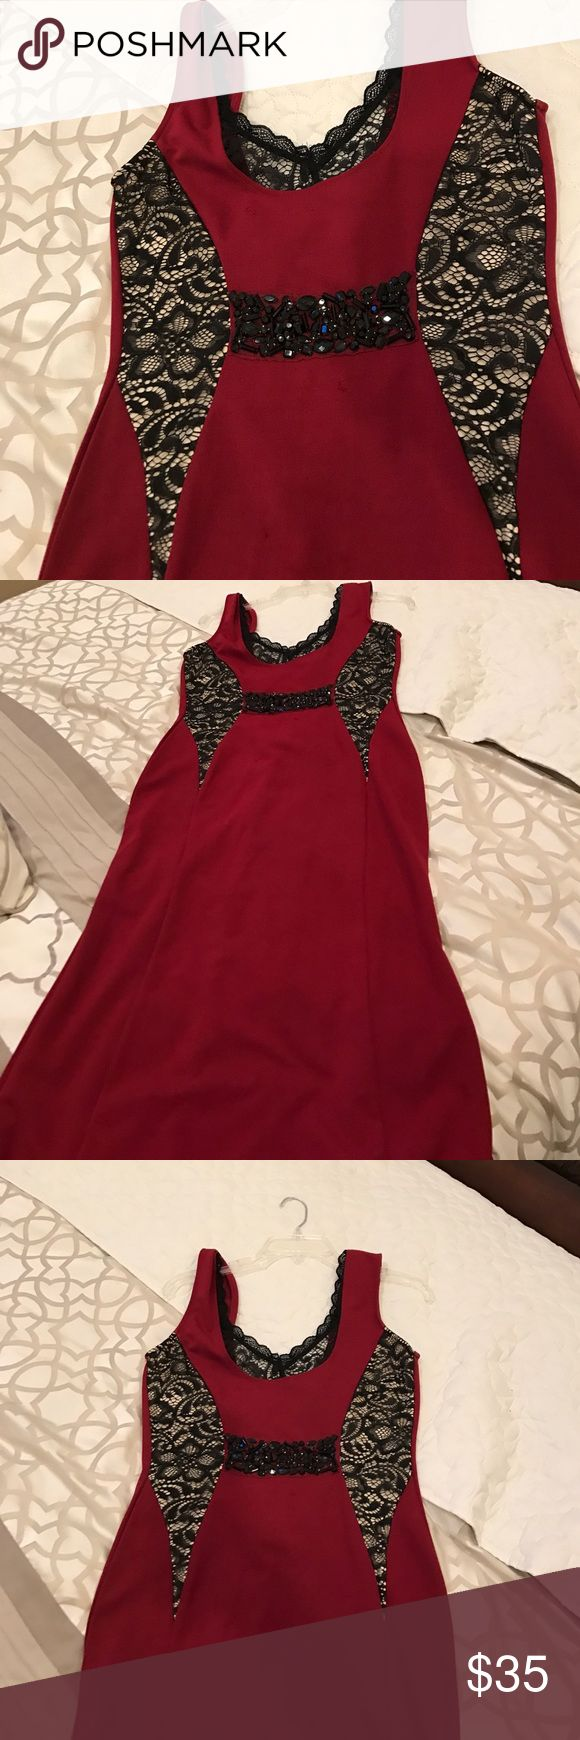 Beautiful Windsor dress Gorgeous Windsor dress worn only once!!! Very unique and elegant WINDSOR Dresses Prom